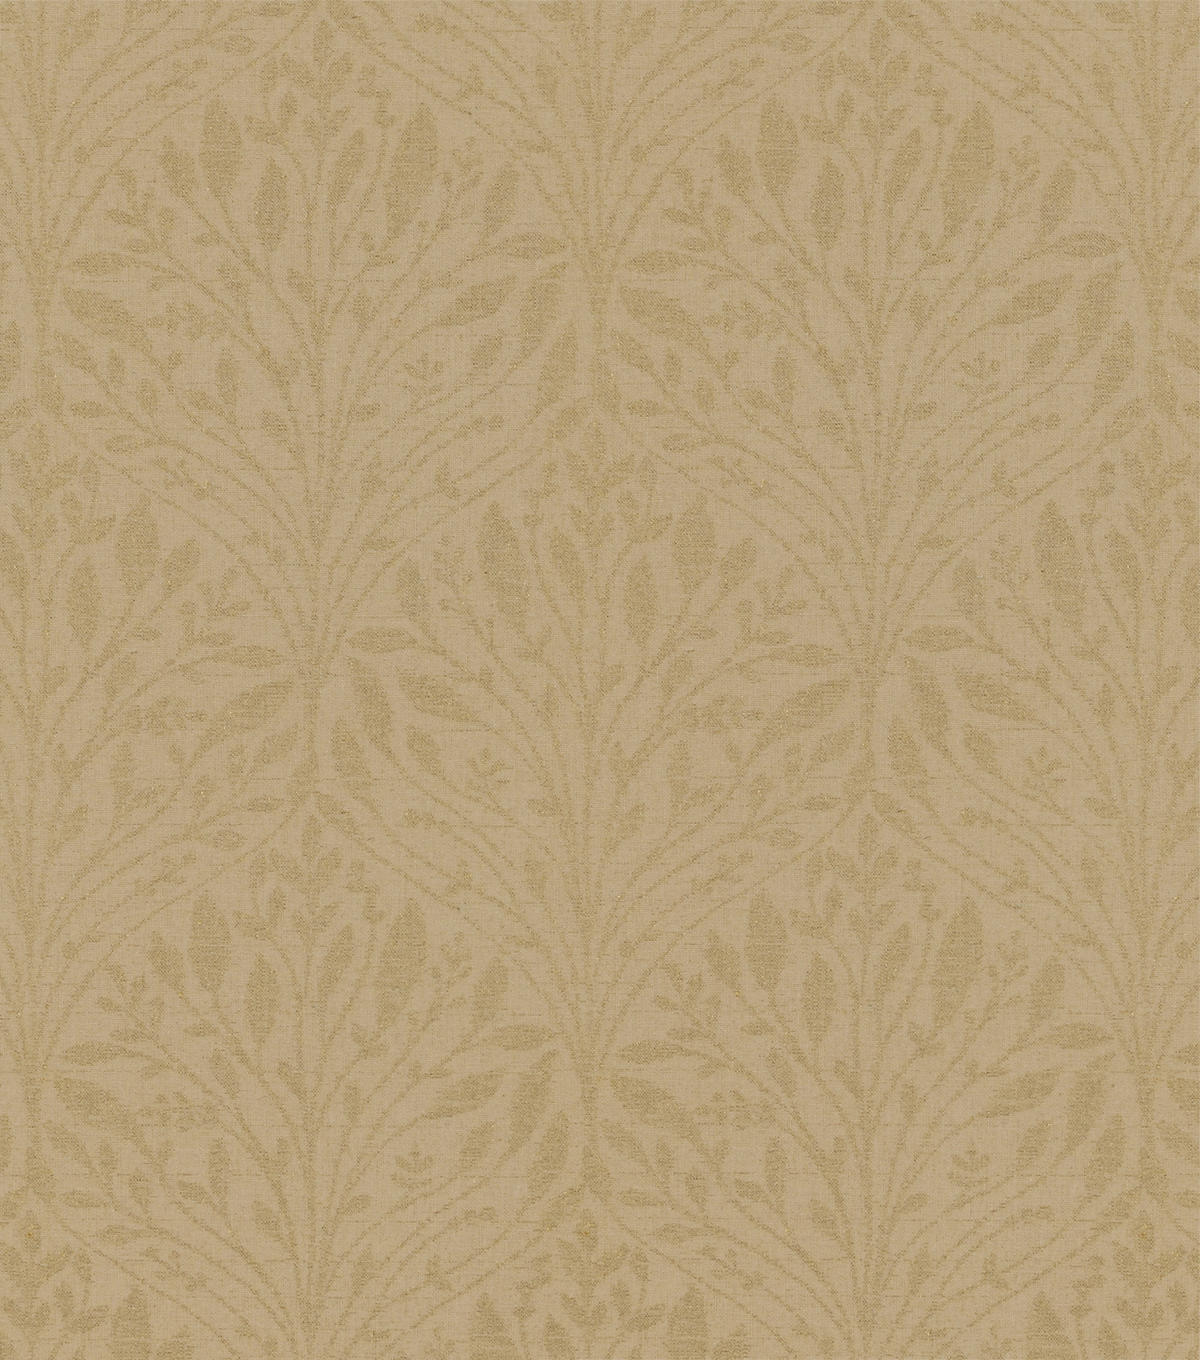 Covington Multi-Purpose Decor Fabric Swatch-Shimmer Softly Vintage Gold